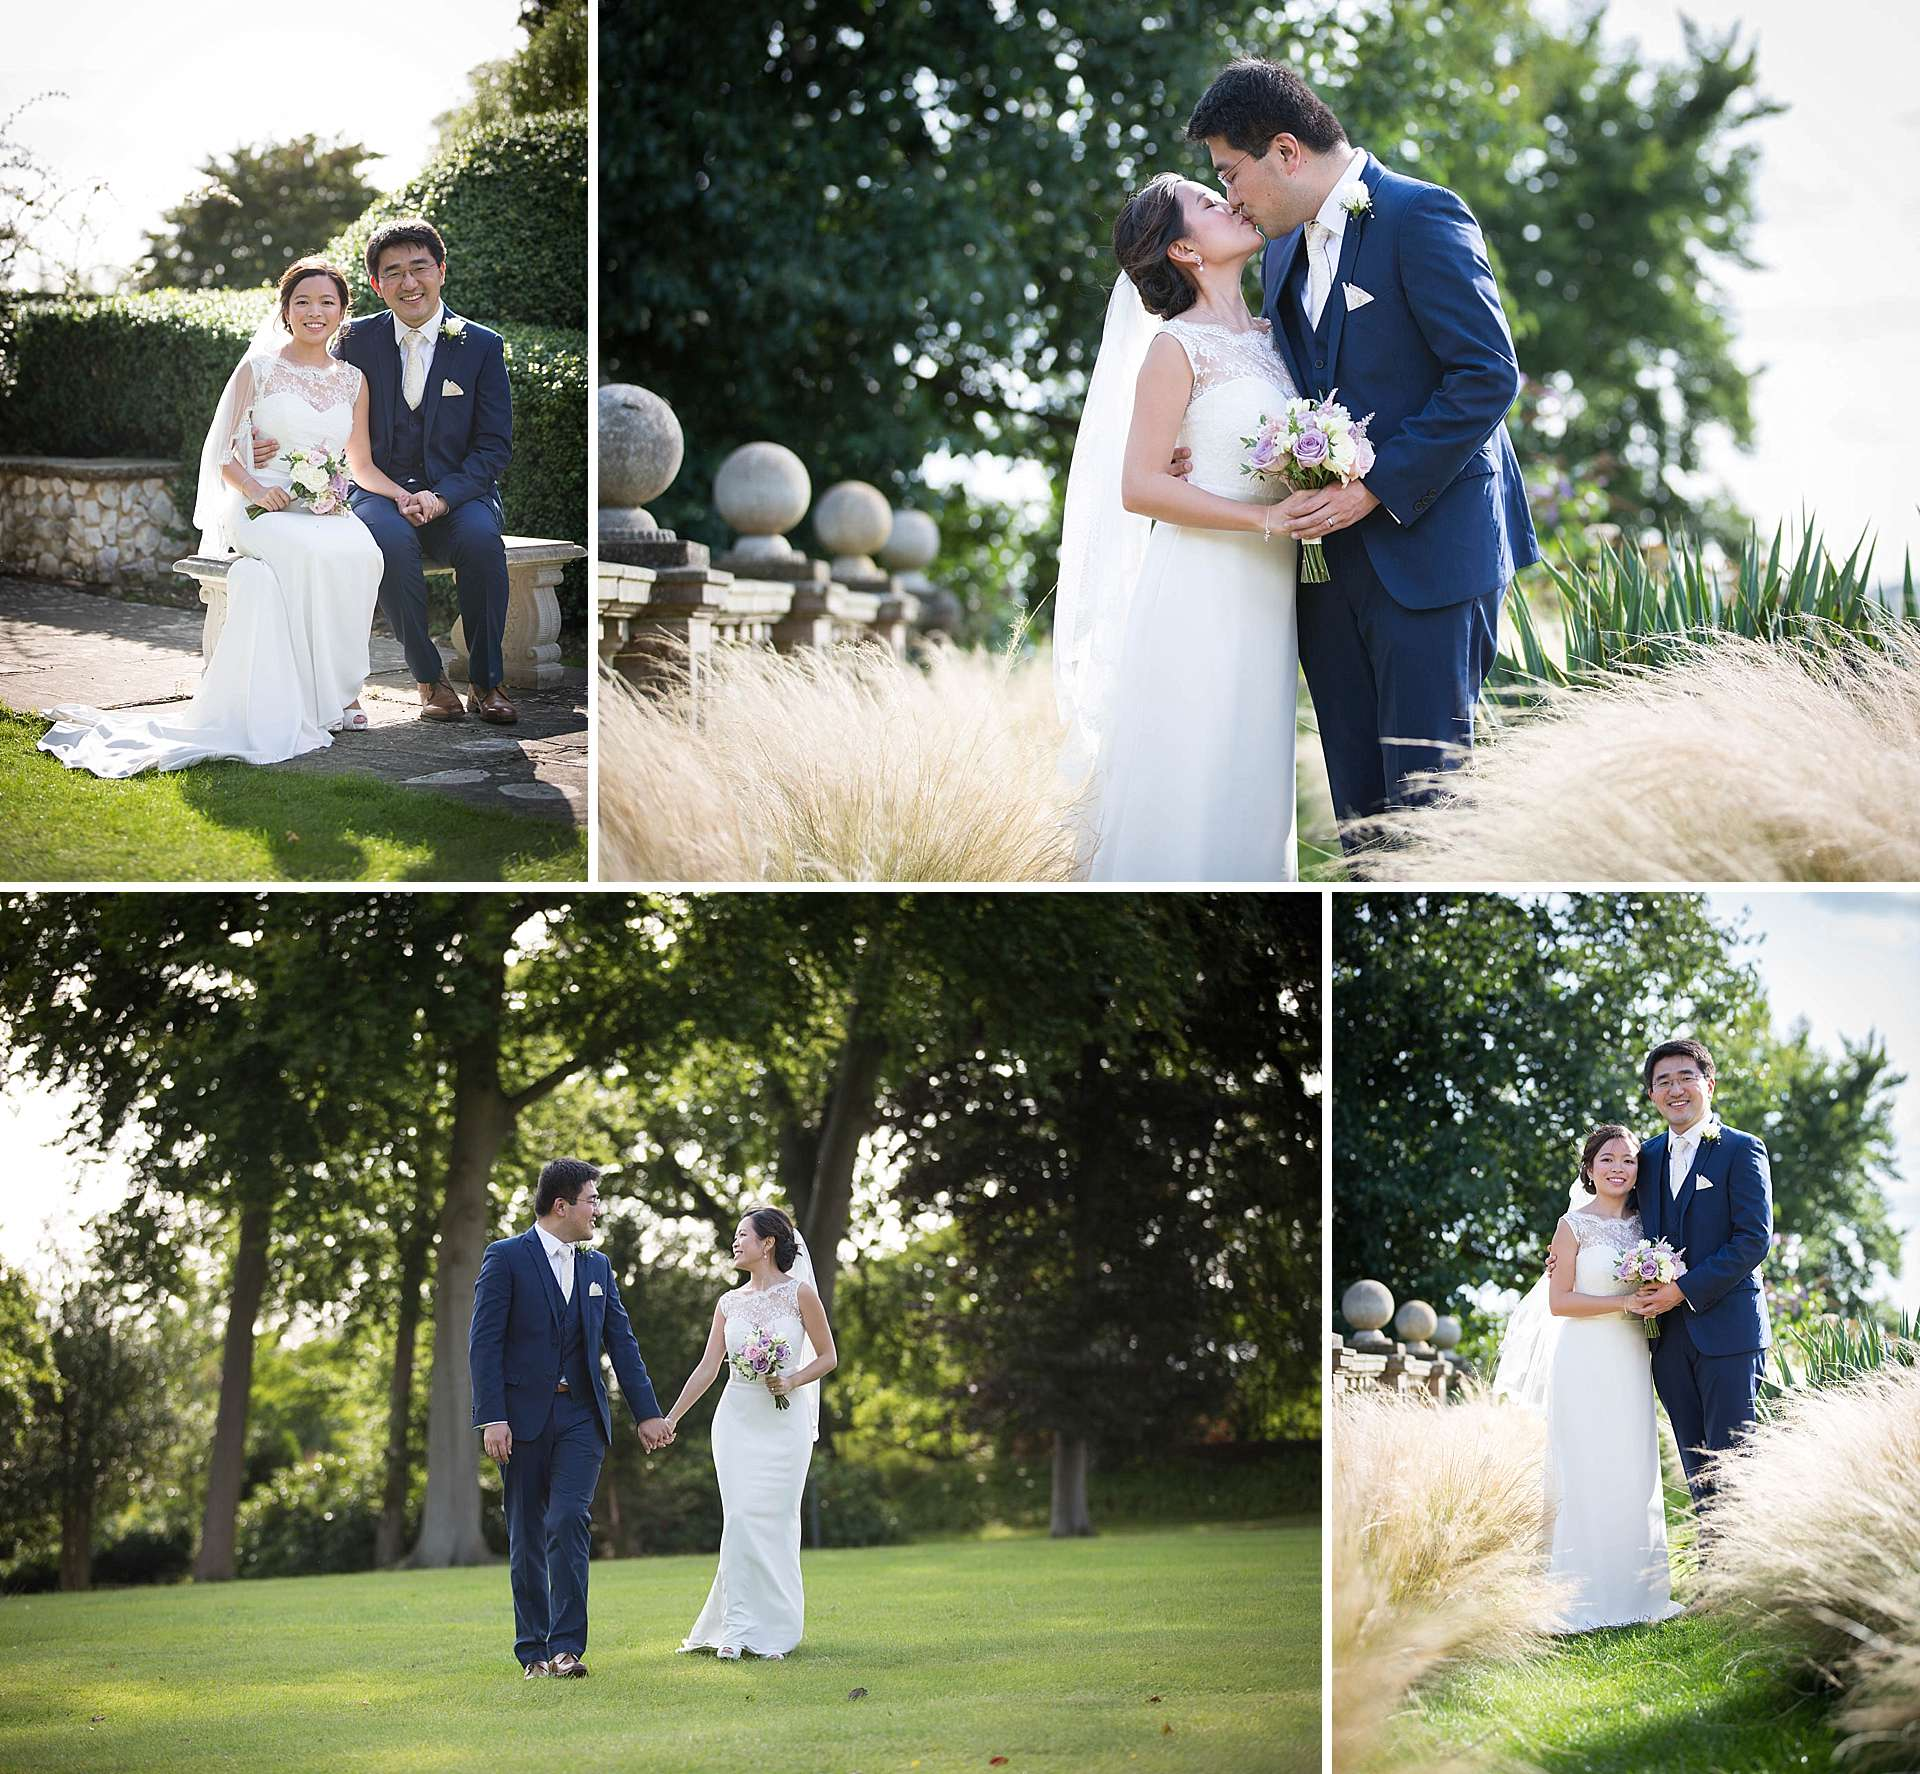 Wedding Portraits at Danesfield House